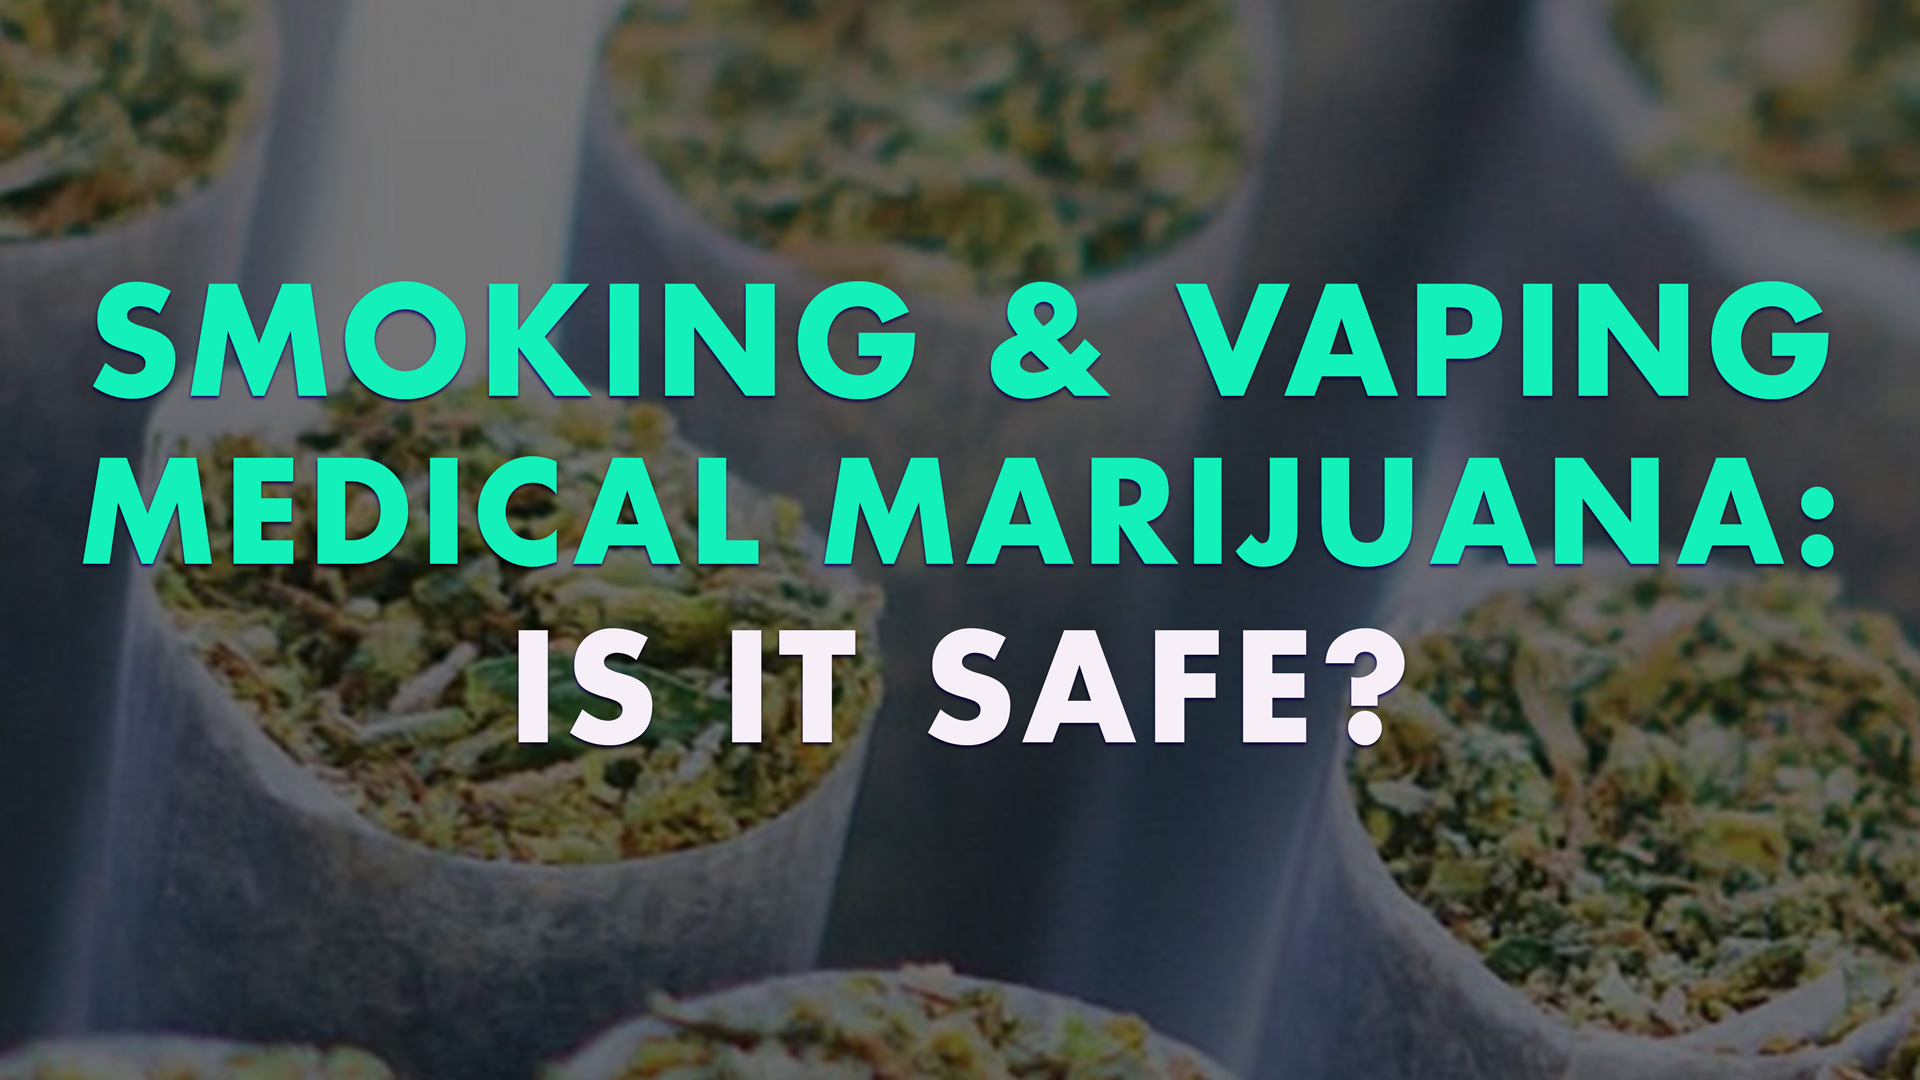 Smoking and vaping medical marijuana: is it safe?